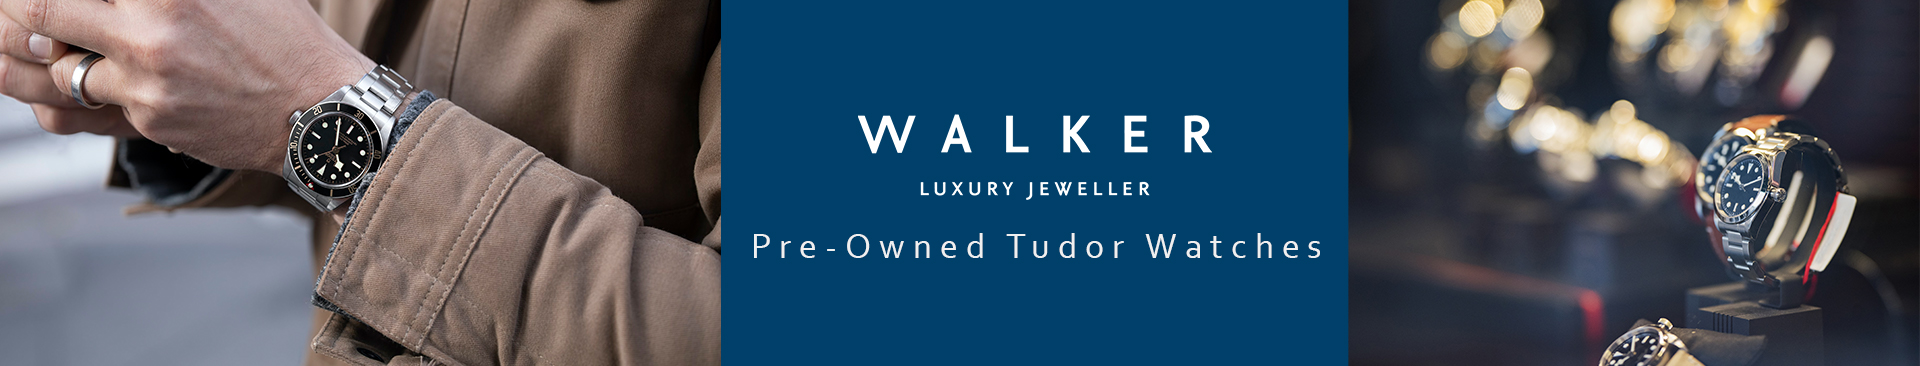 PRE-OWNED WATCHES TUDOR